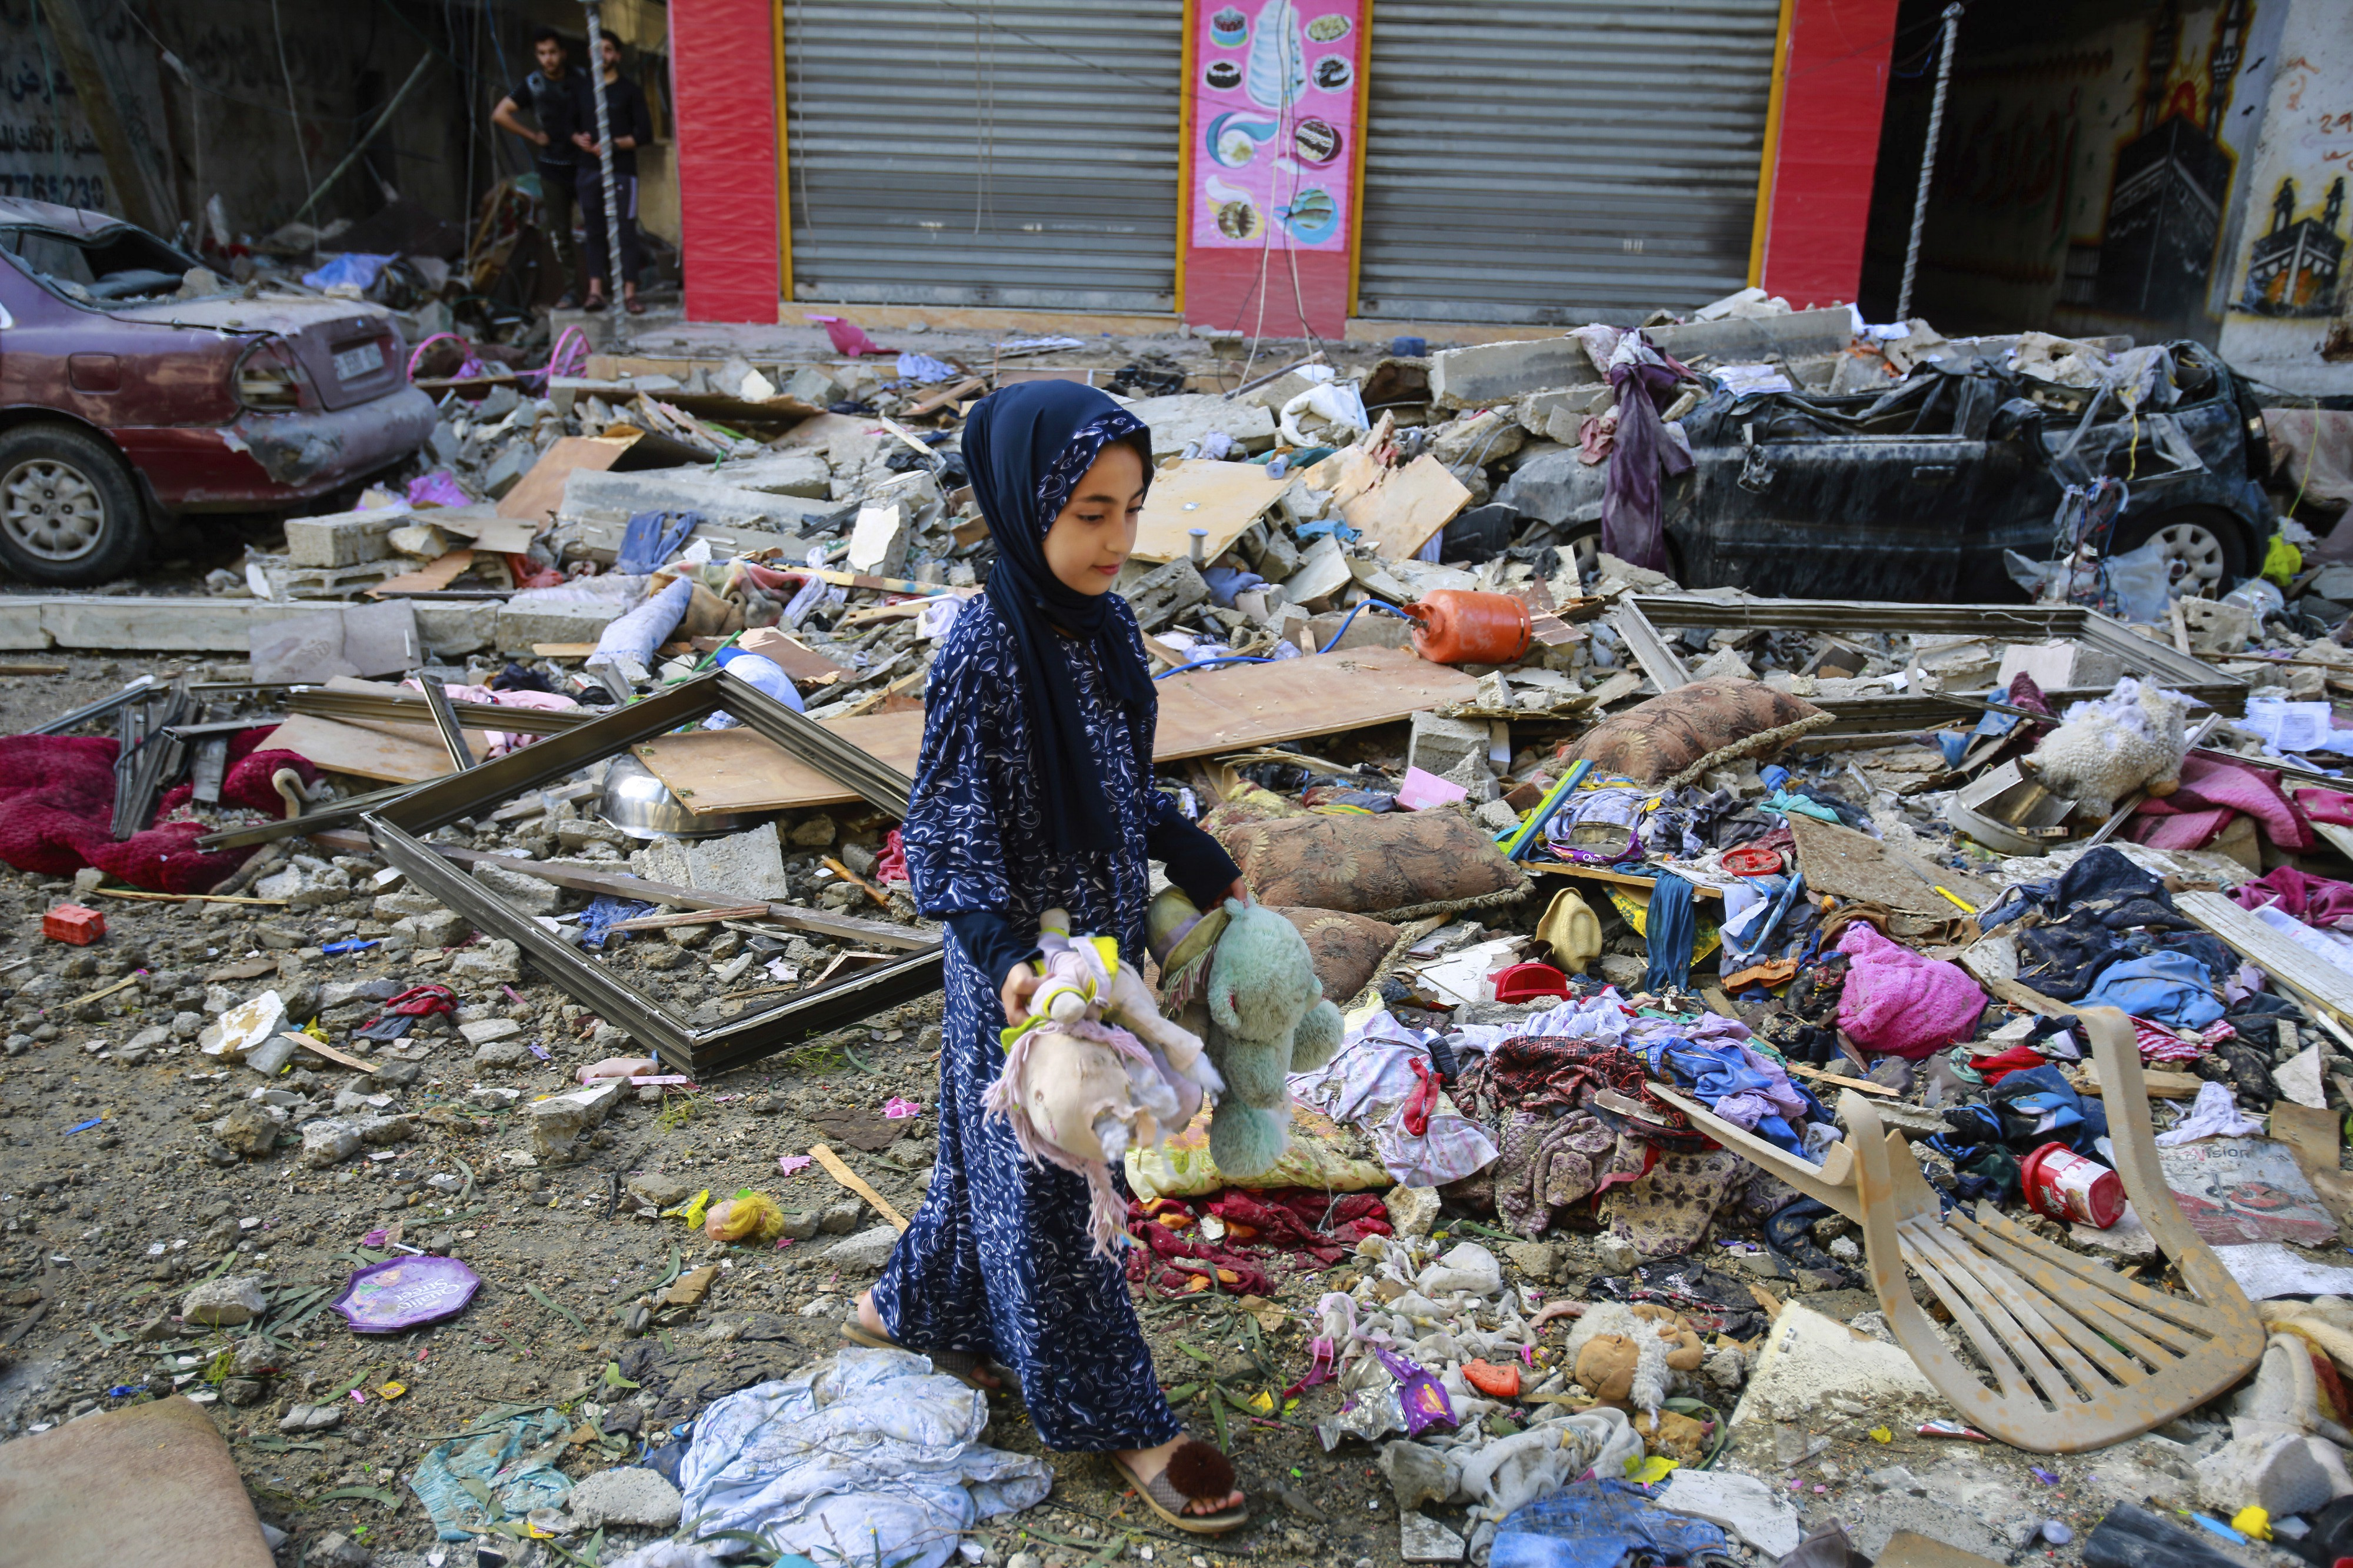 A Palestinian girl stands amongst destroyed building to collect her neighbours bears and toys in the aftermath of an Israeli airstrike on Gaza—19 May 2021. (Photo by Ahmed Zakot / SOPA Images/Sipa USA)(Sipa via AP Images).